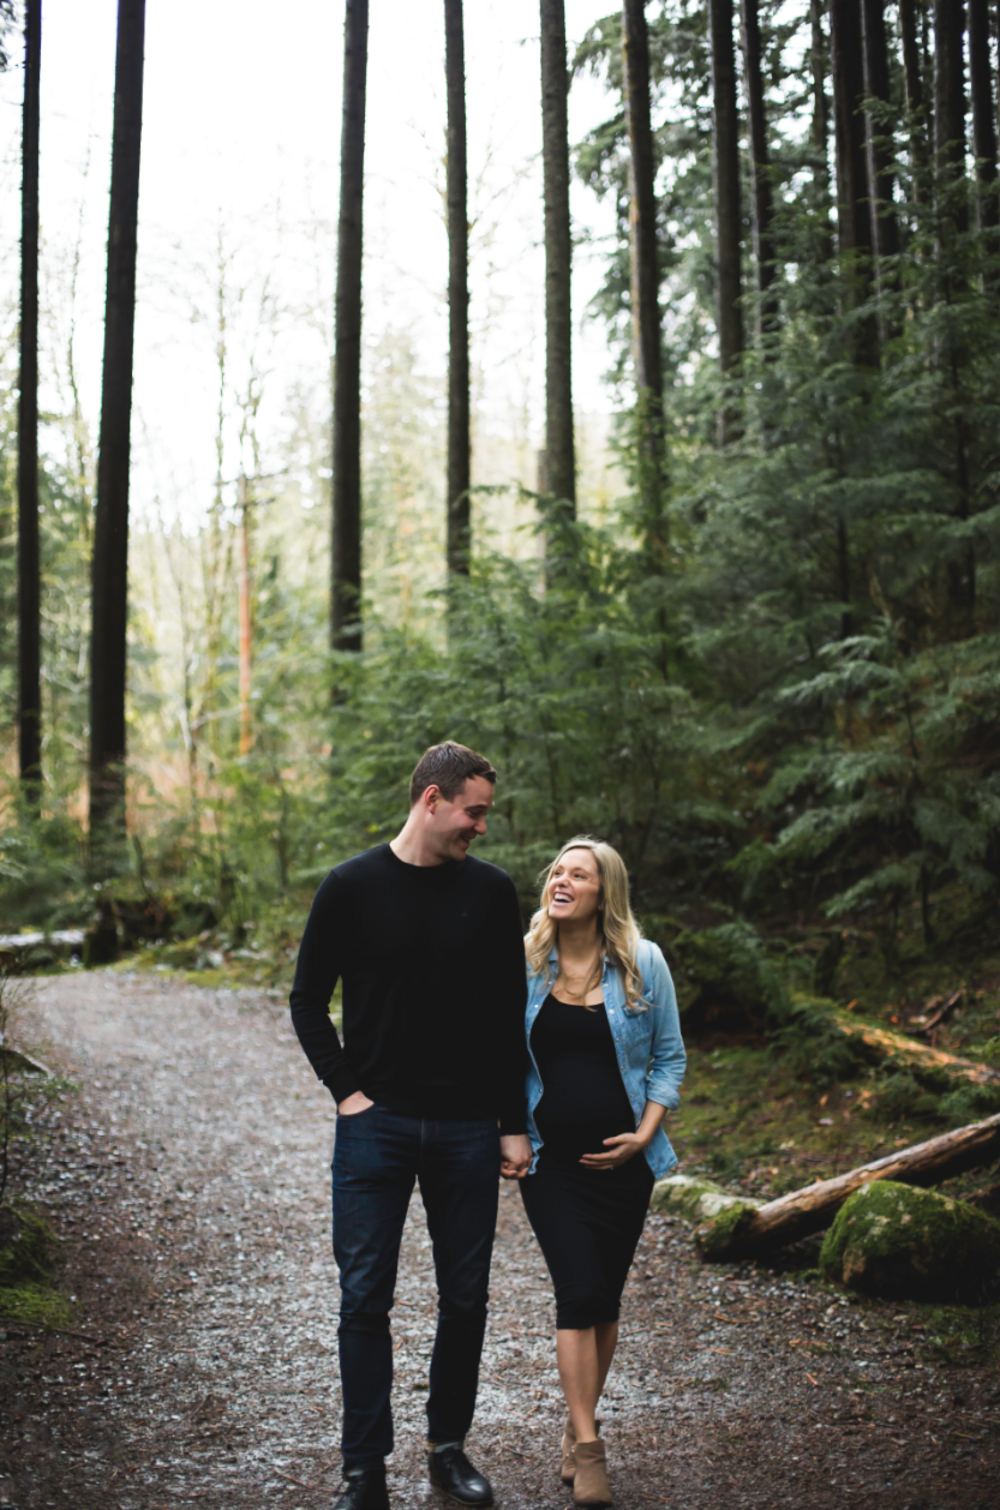 Maternity-Session-North-Vancouver-Lynn-Canyon-BC-Hamilton-Burlington-Oakville-Niagara-Toronto-Wedding-Portrait-Photographer-Expecting-Photography-Waterfront-HamOnt-Golden-Hour-Moments-by-Lauren-Photo-Image-3.png